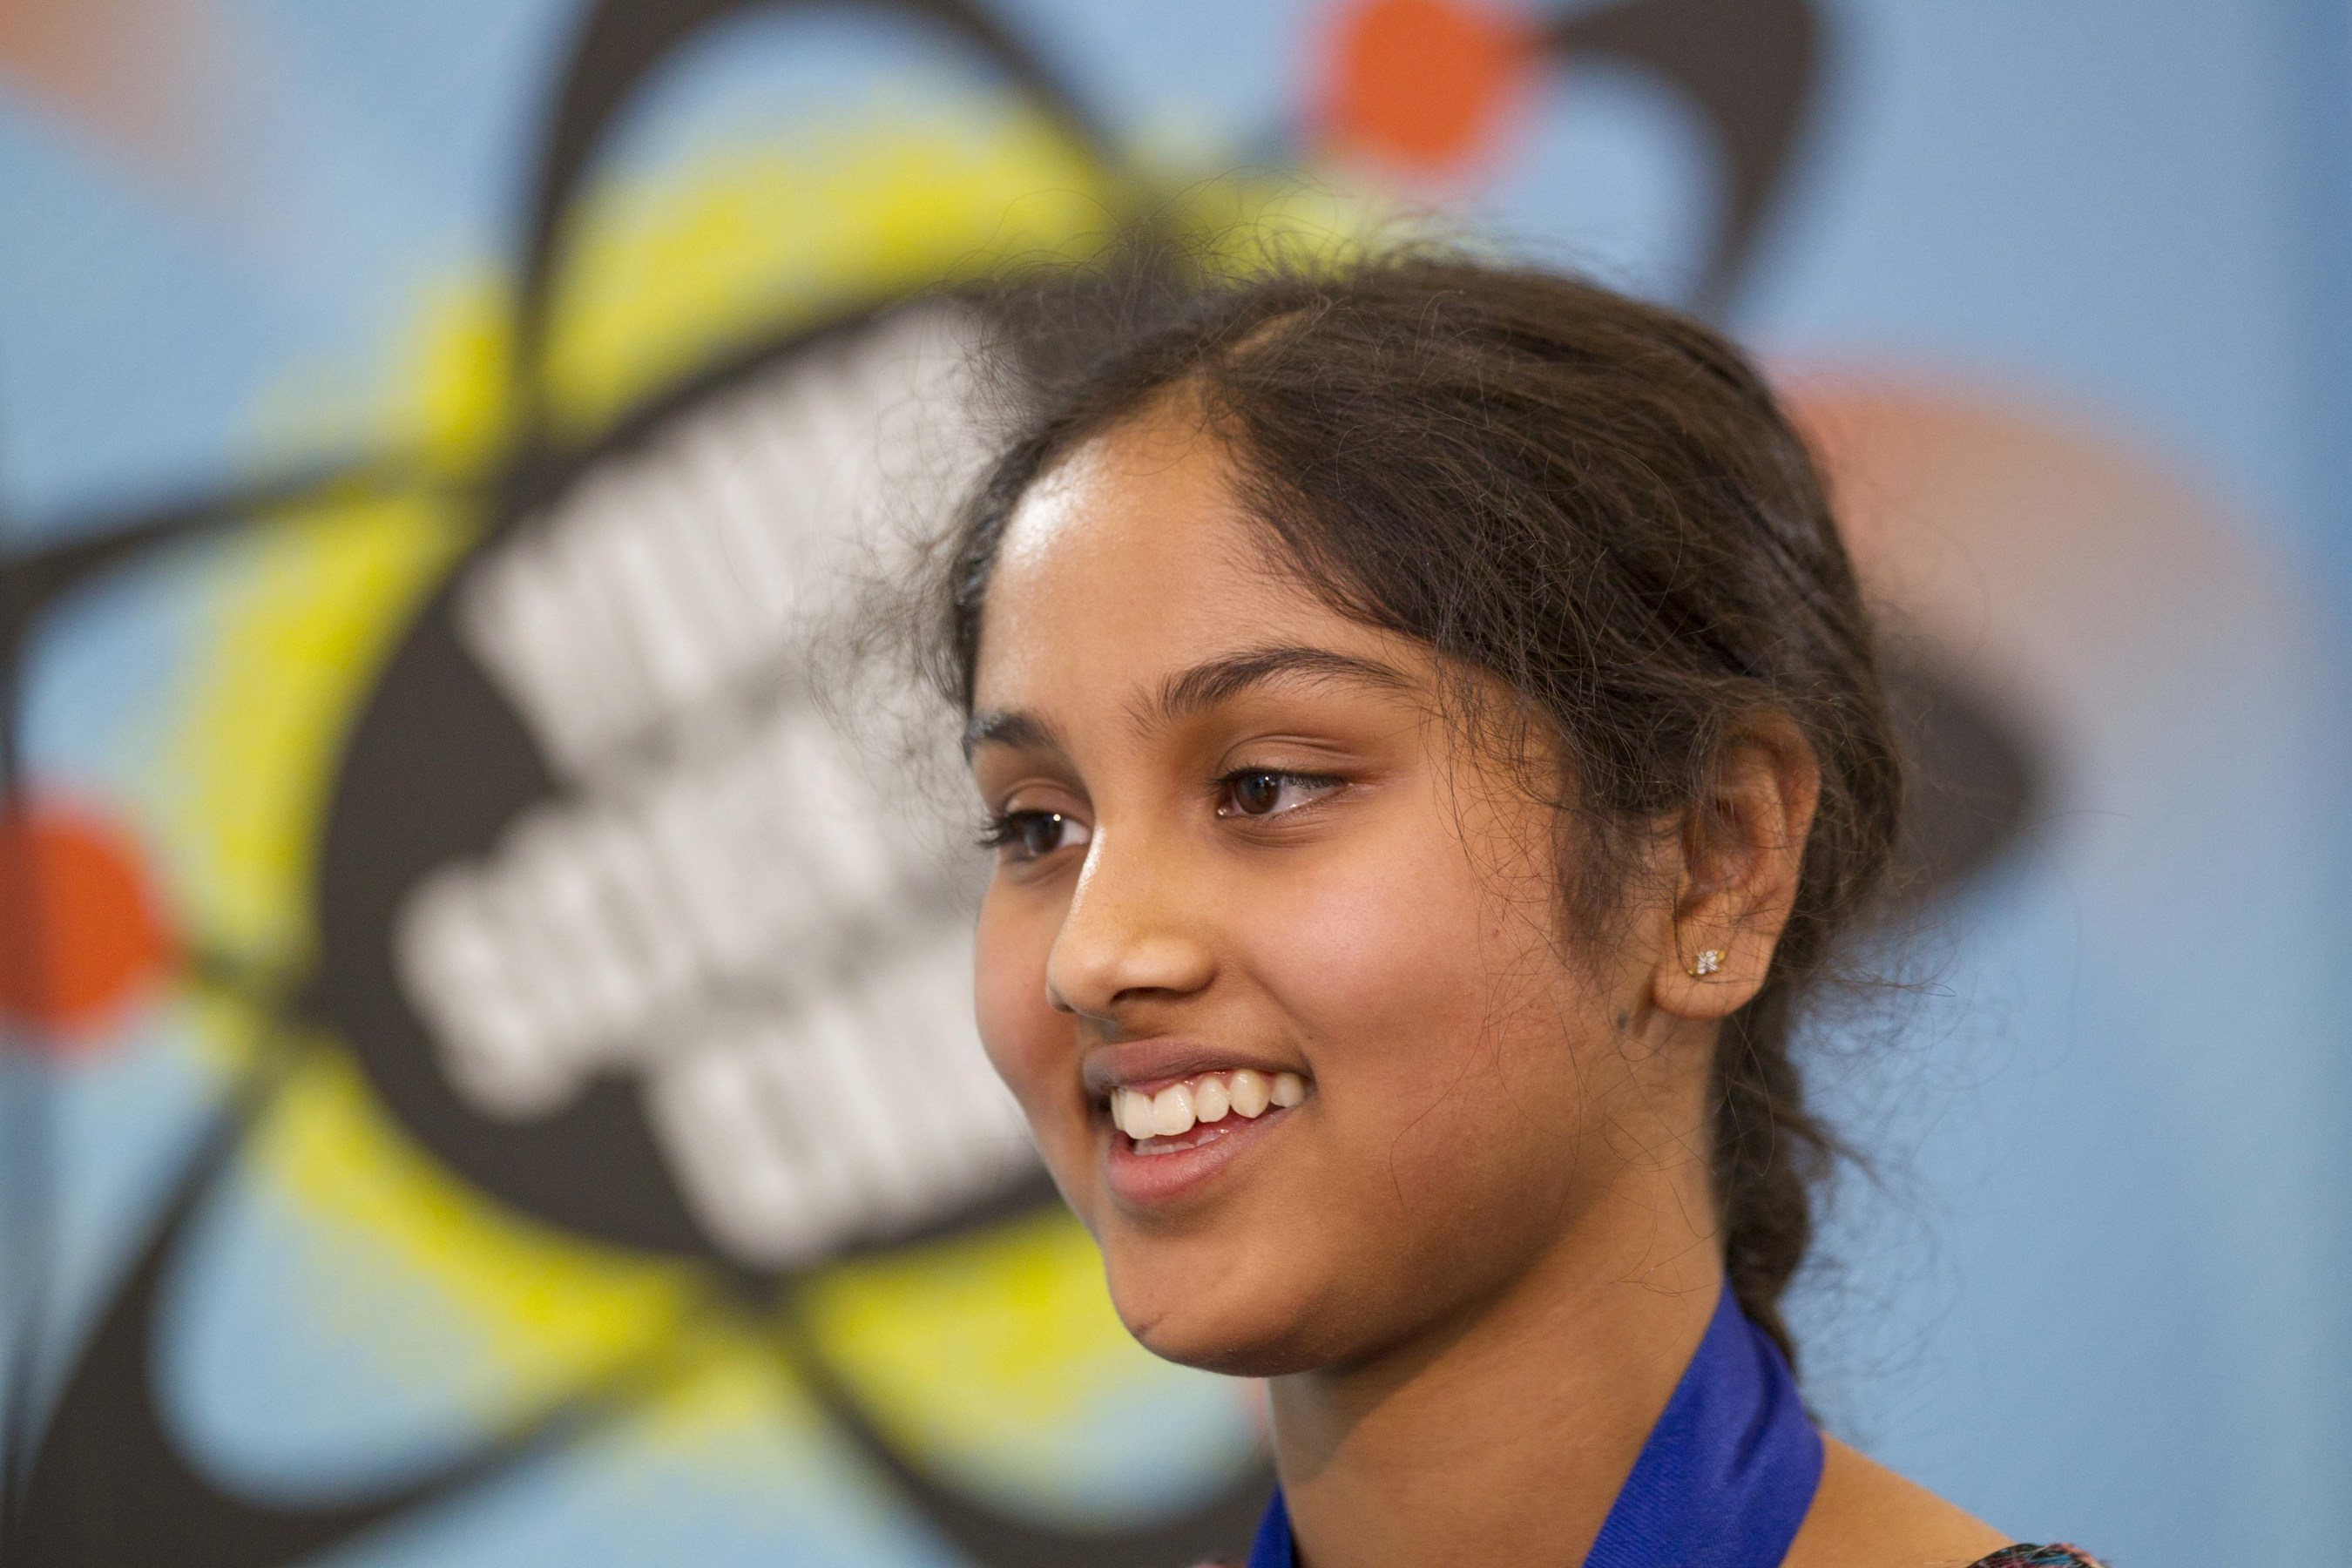 13-year-old Maanasa Mendu of Mason, OH was awarded $25,000 and named America's Top Young Scientist in the annual Discovery Education 3M Young Scientist Challenge.